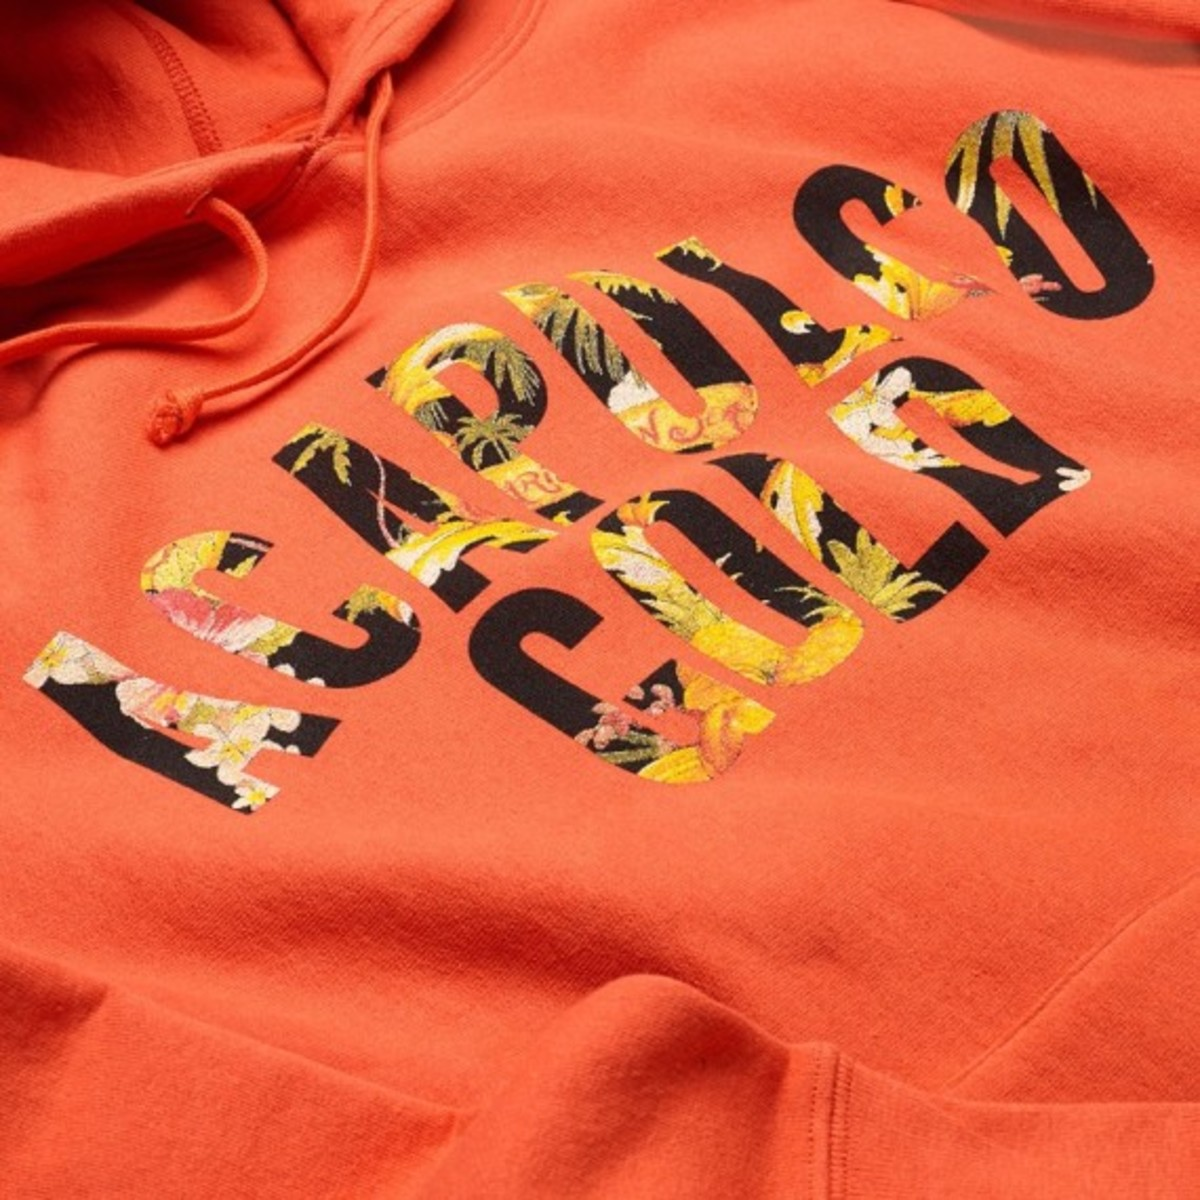 acapulco-gold-spring-2014-collection-delivery-1-07